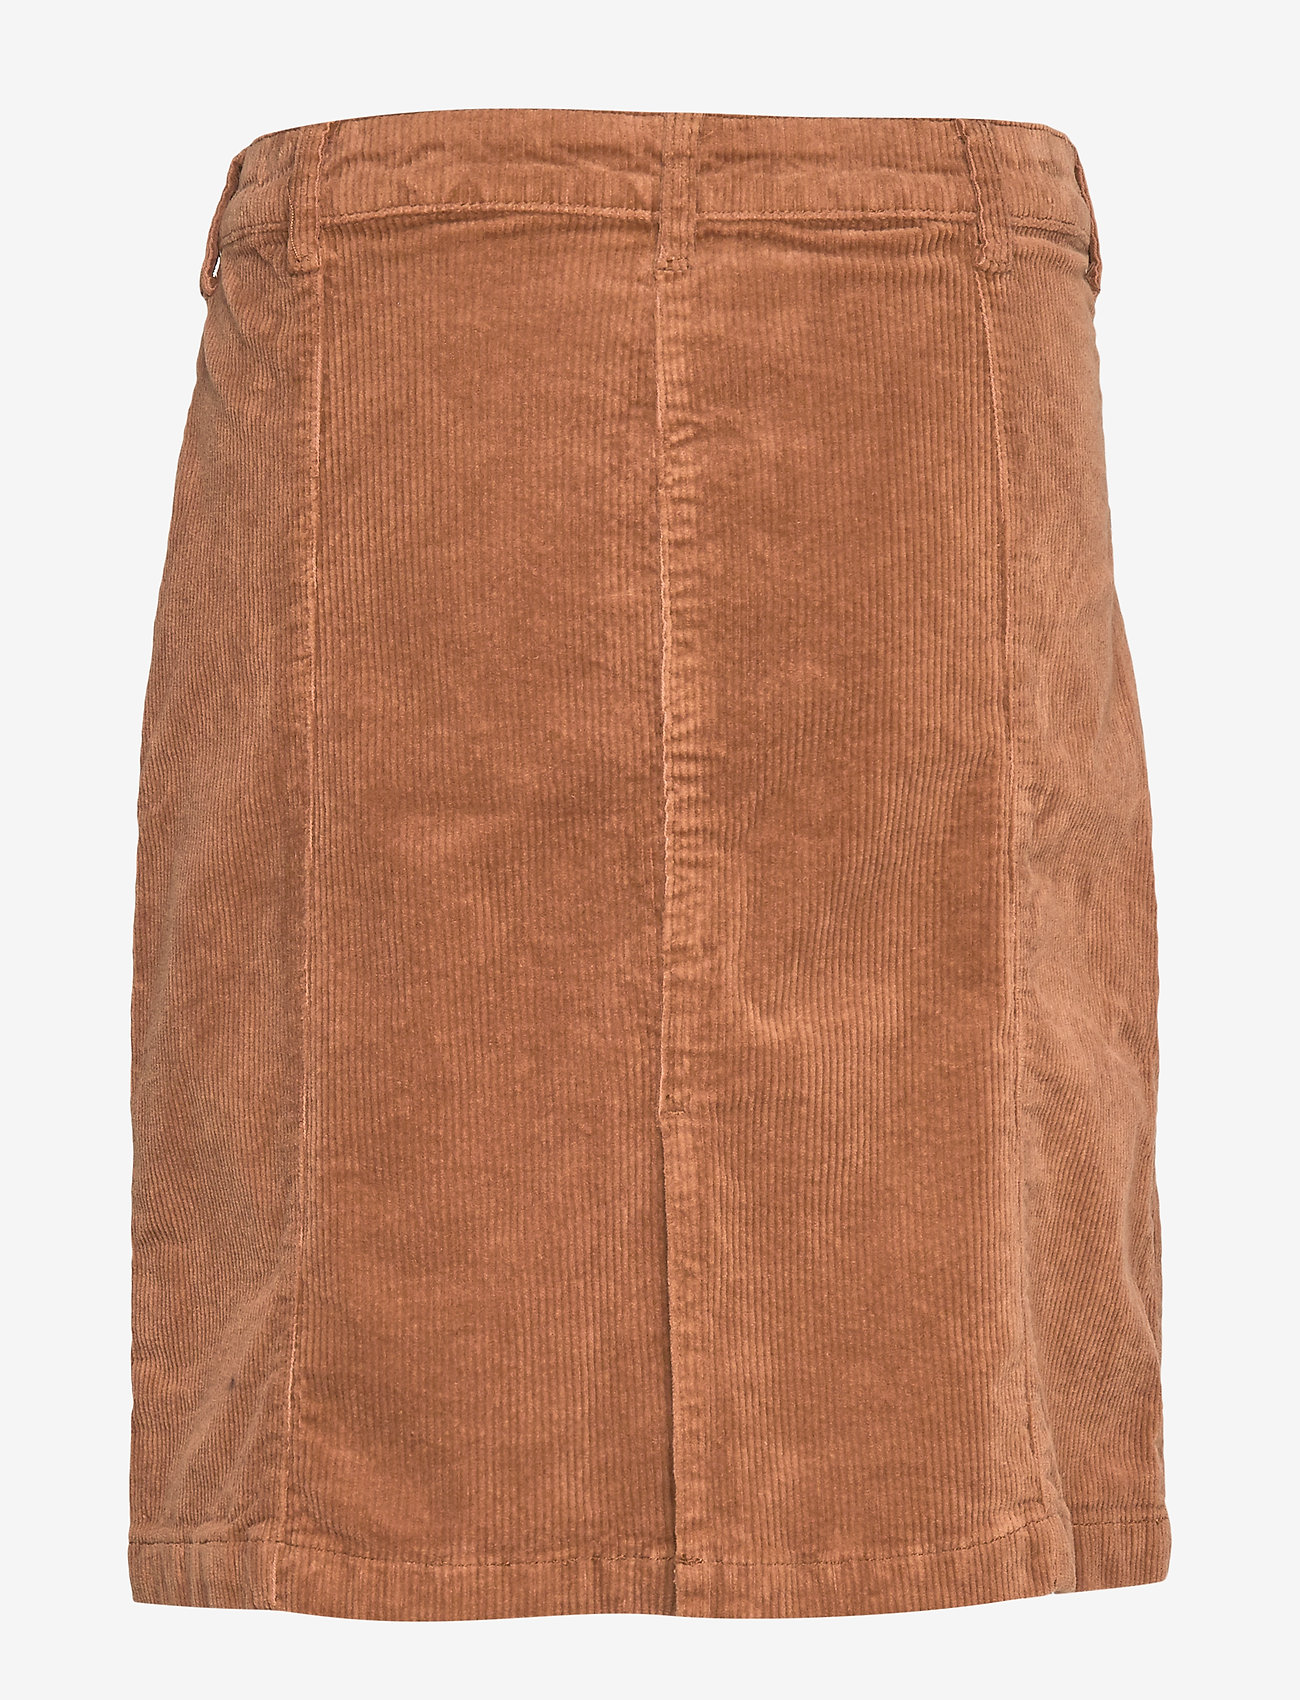 Tria Skirt (Soft Camel) (34.98 €) - Cream EHR3t